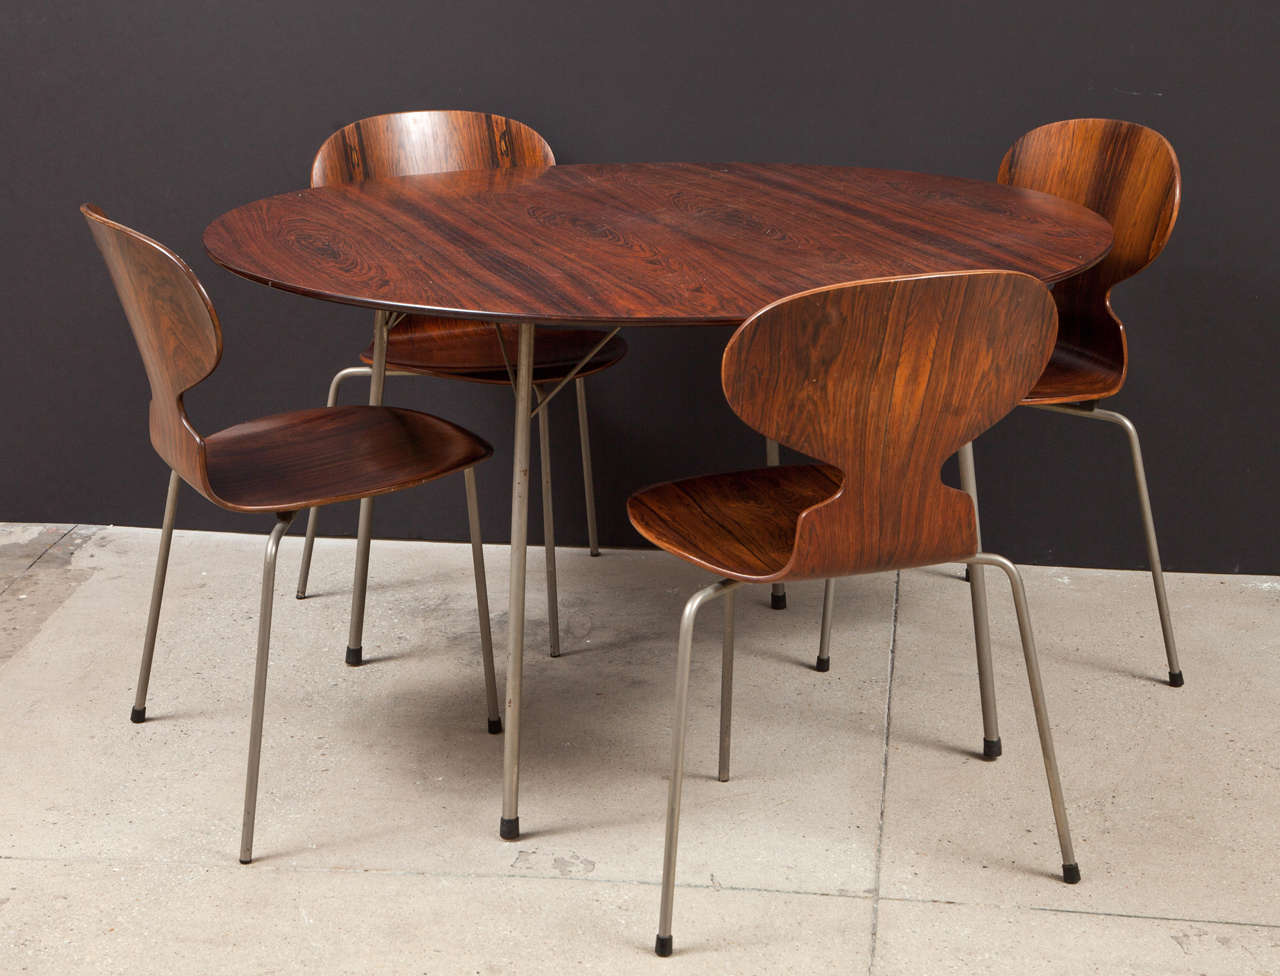 Ant Rosewood Table and Dining Chair Set by Arne Jacobsen 2